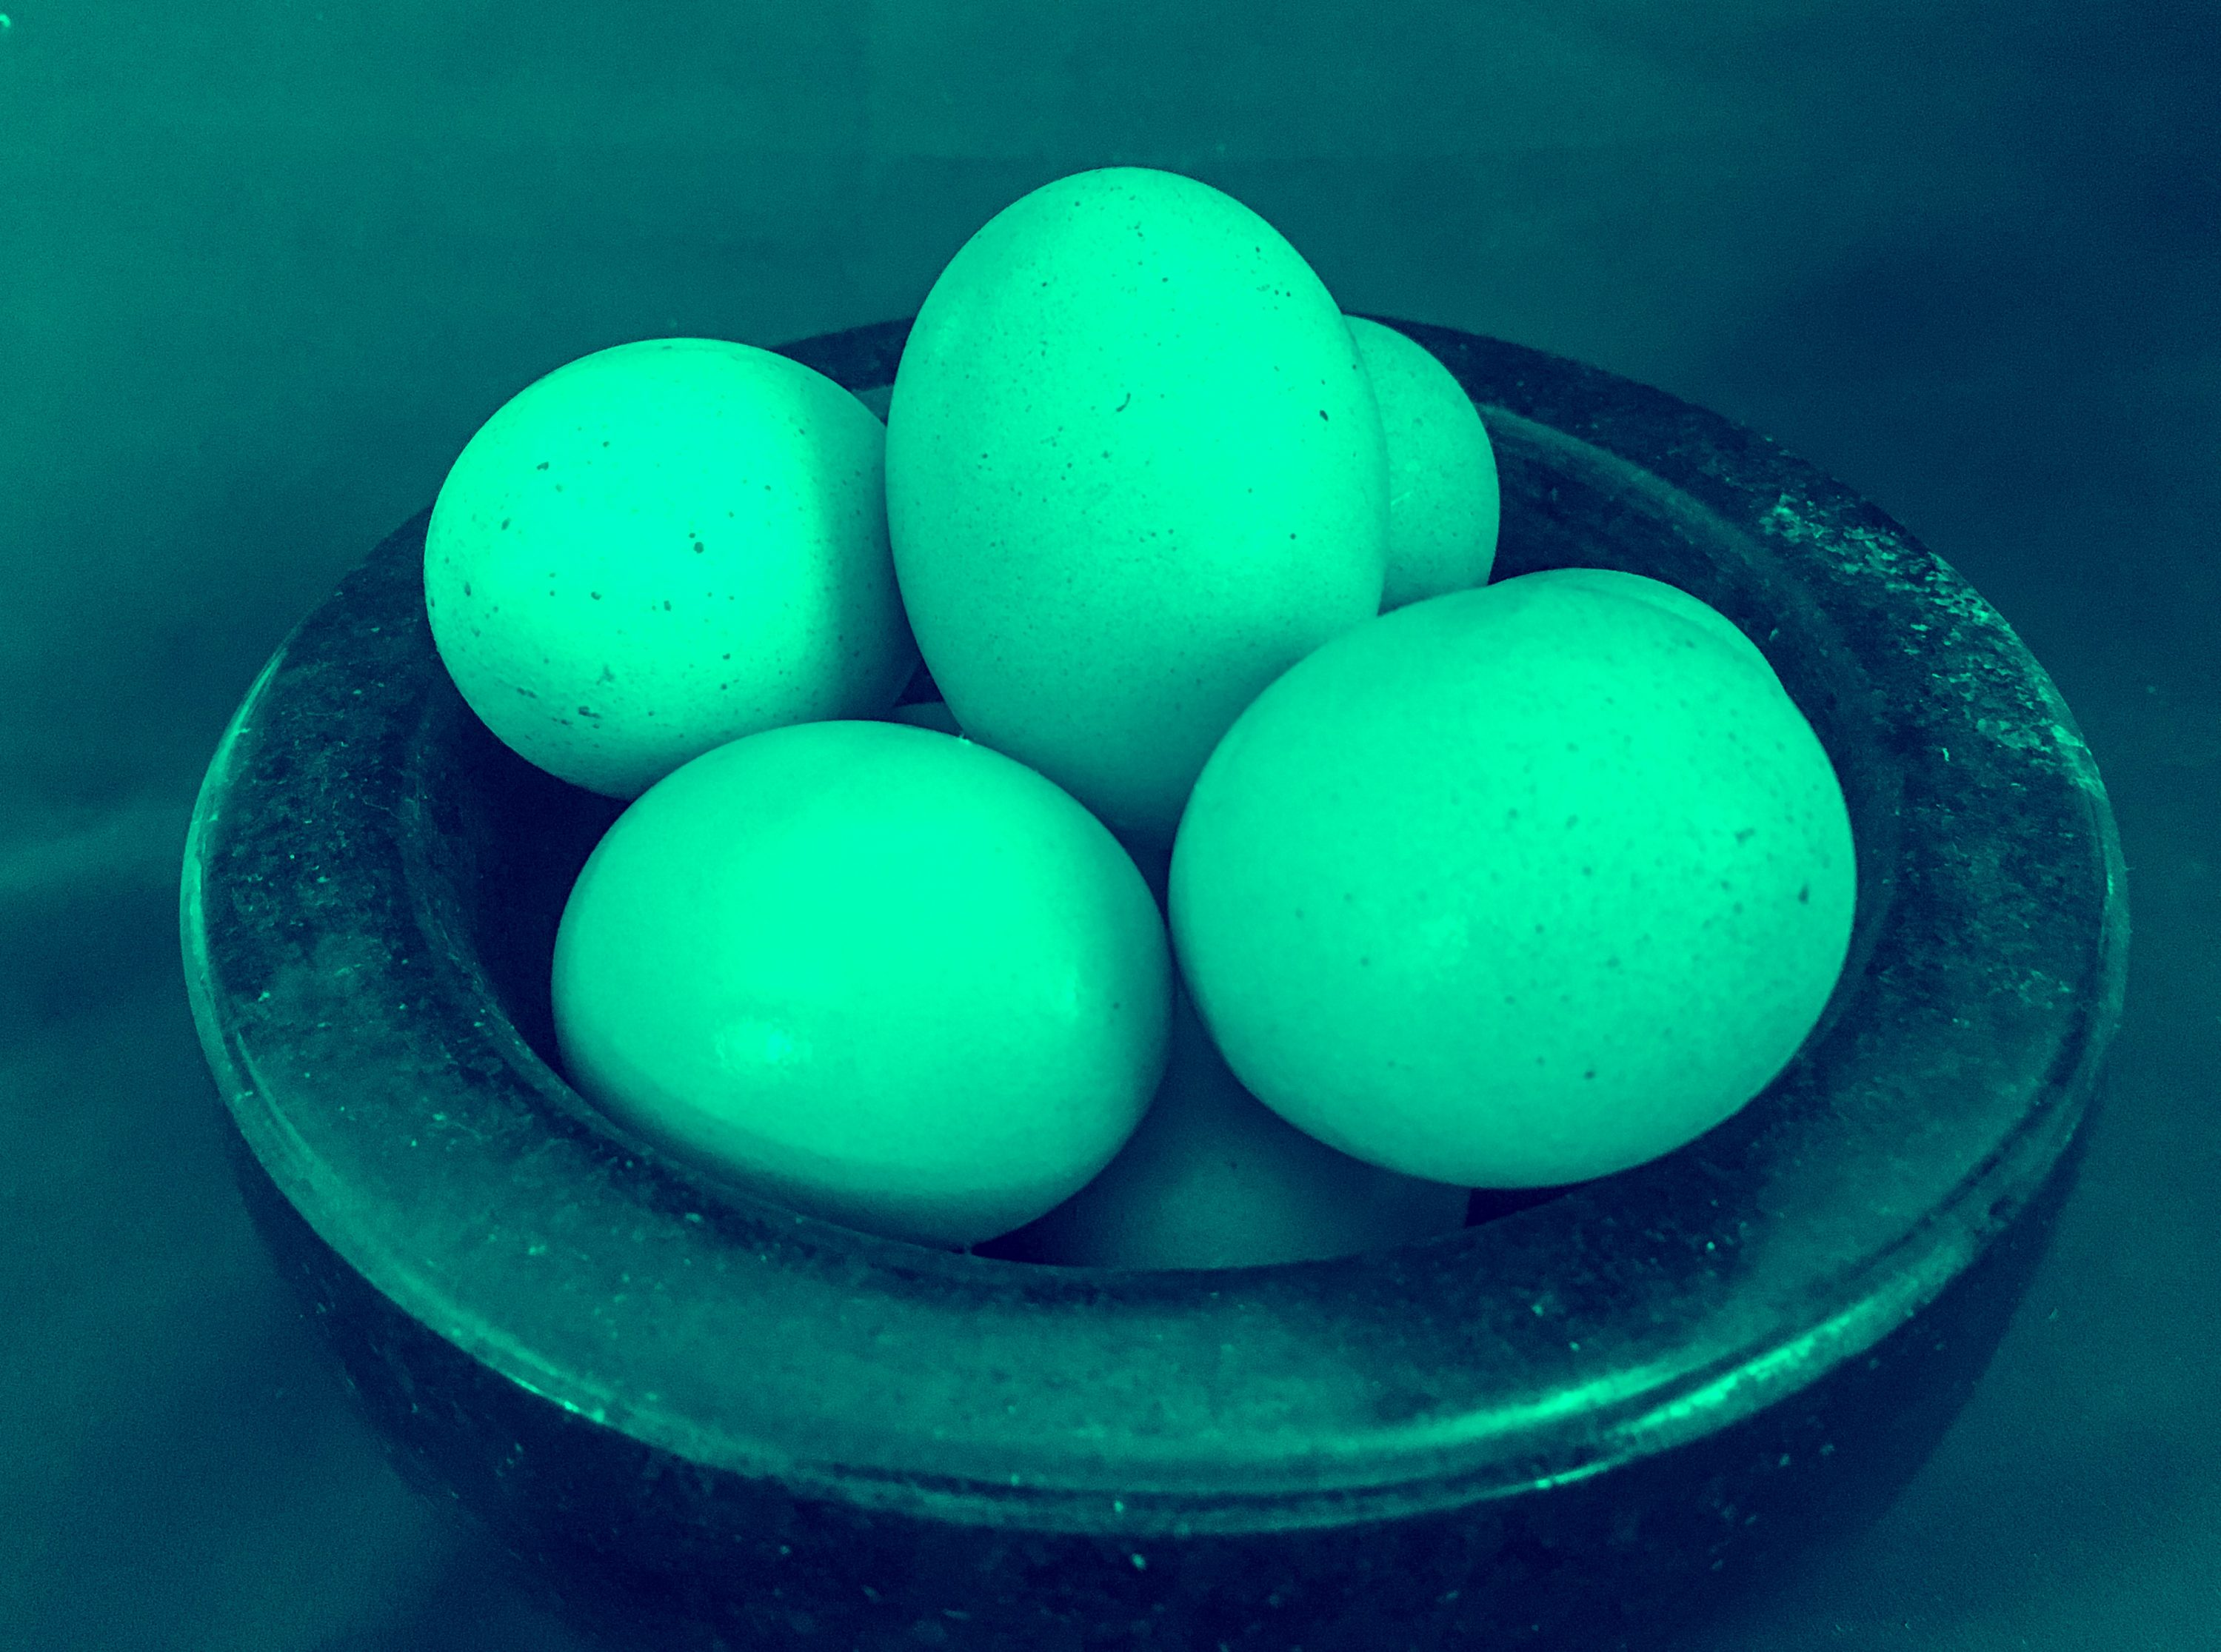 jade eggs in a bowl, ready for vaginal exercise and pleasure